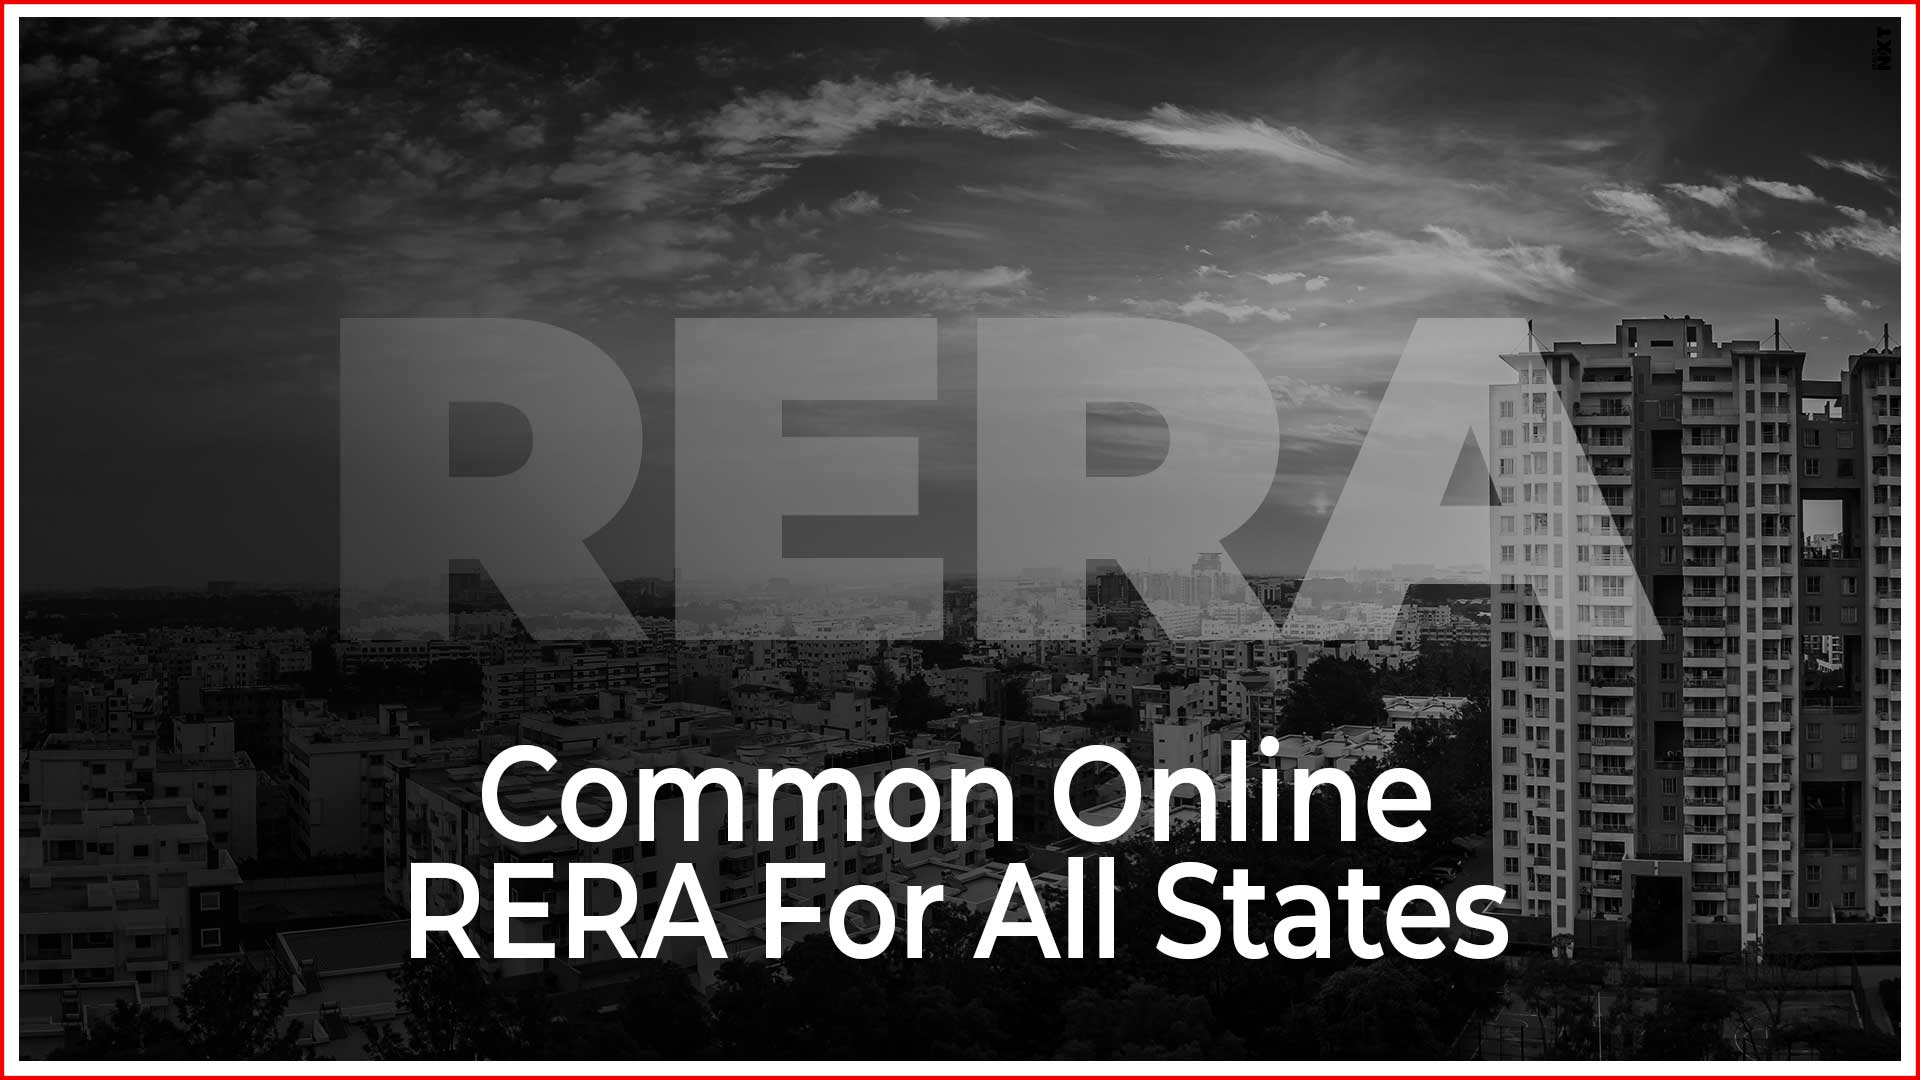 Common Online RERA For All States